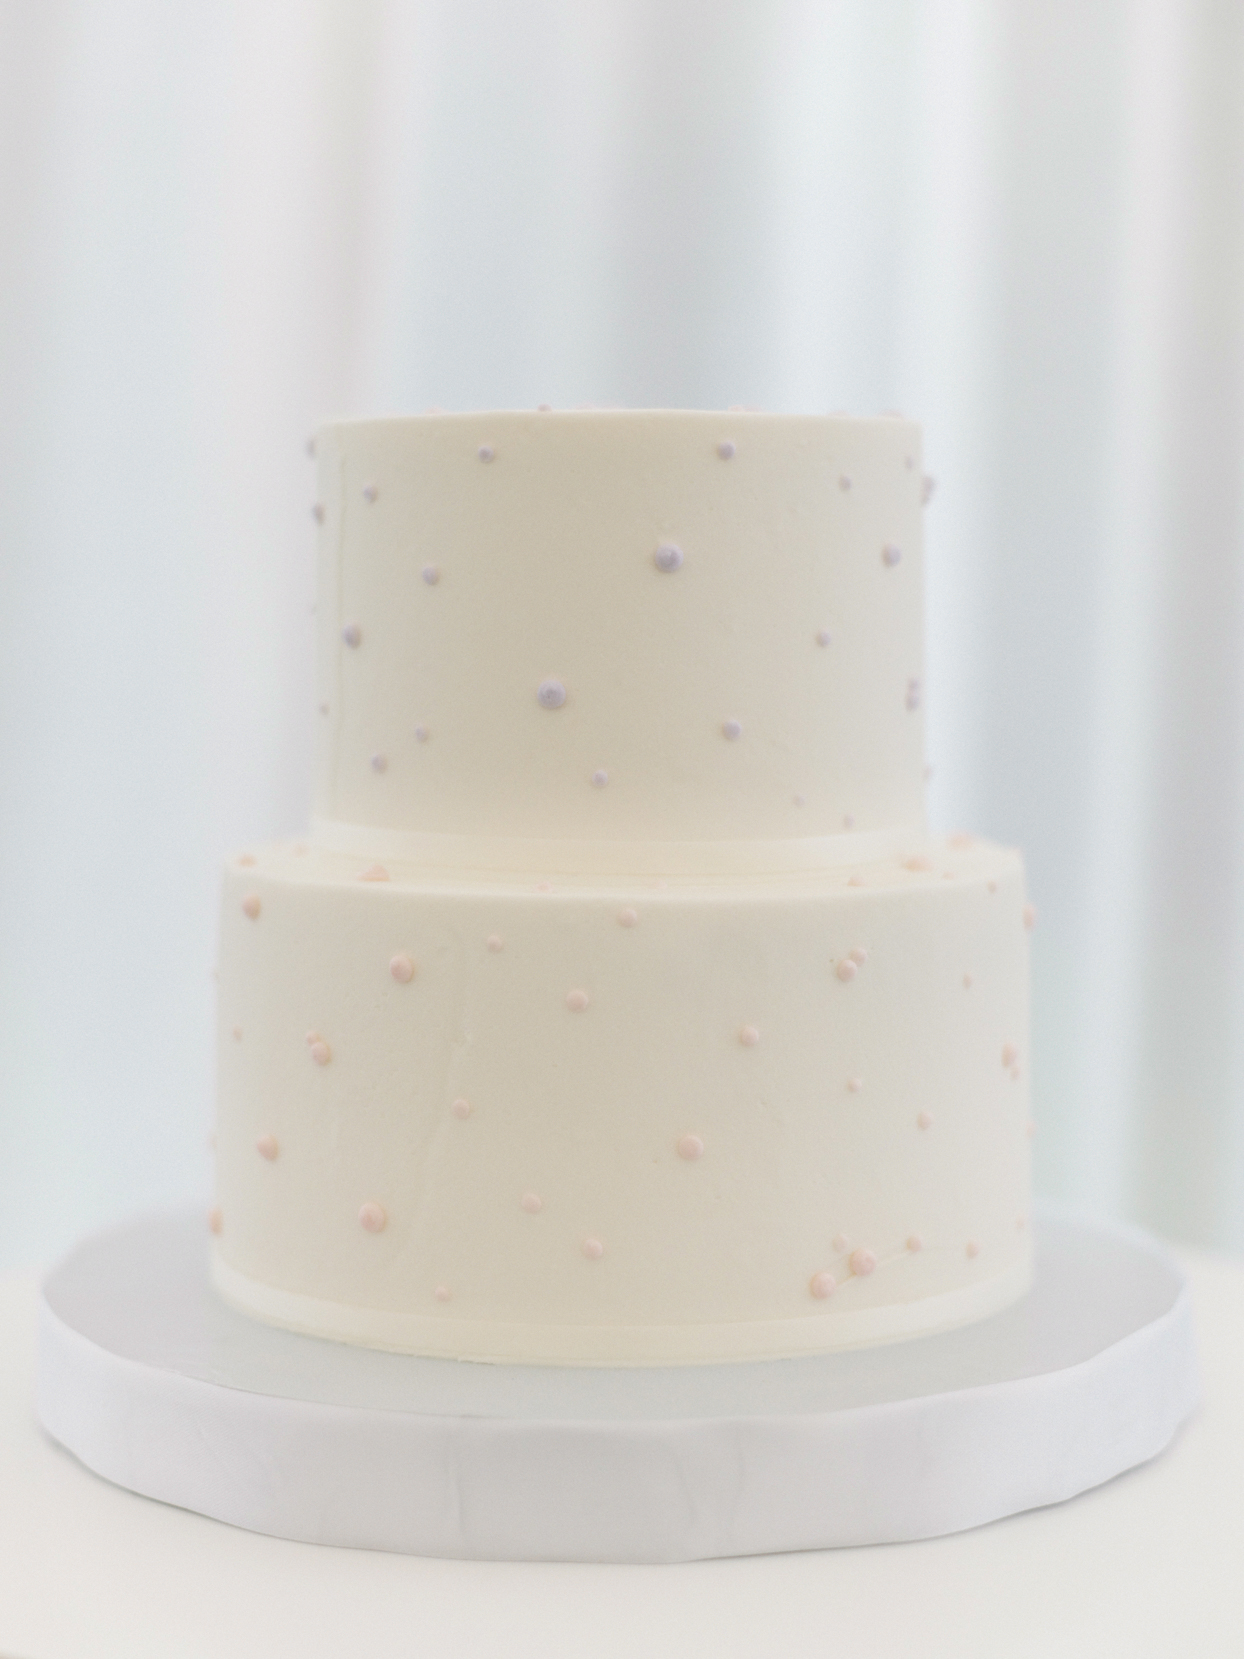 two tiered simplistic white frosted wedding cake